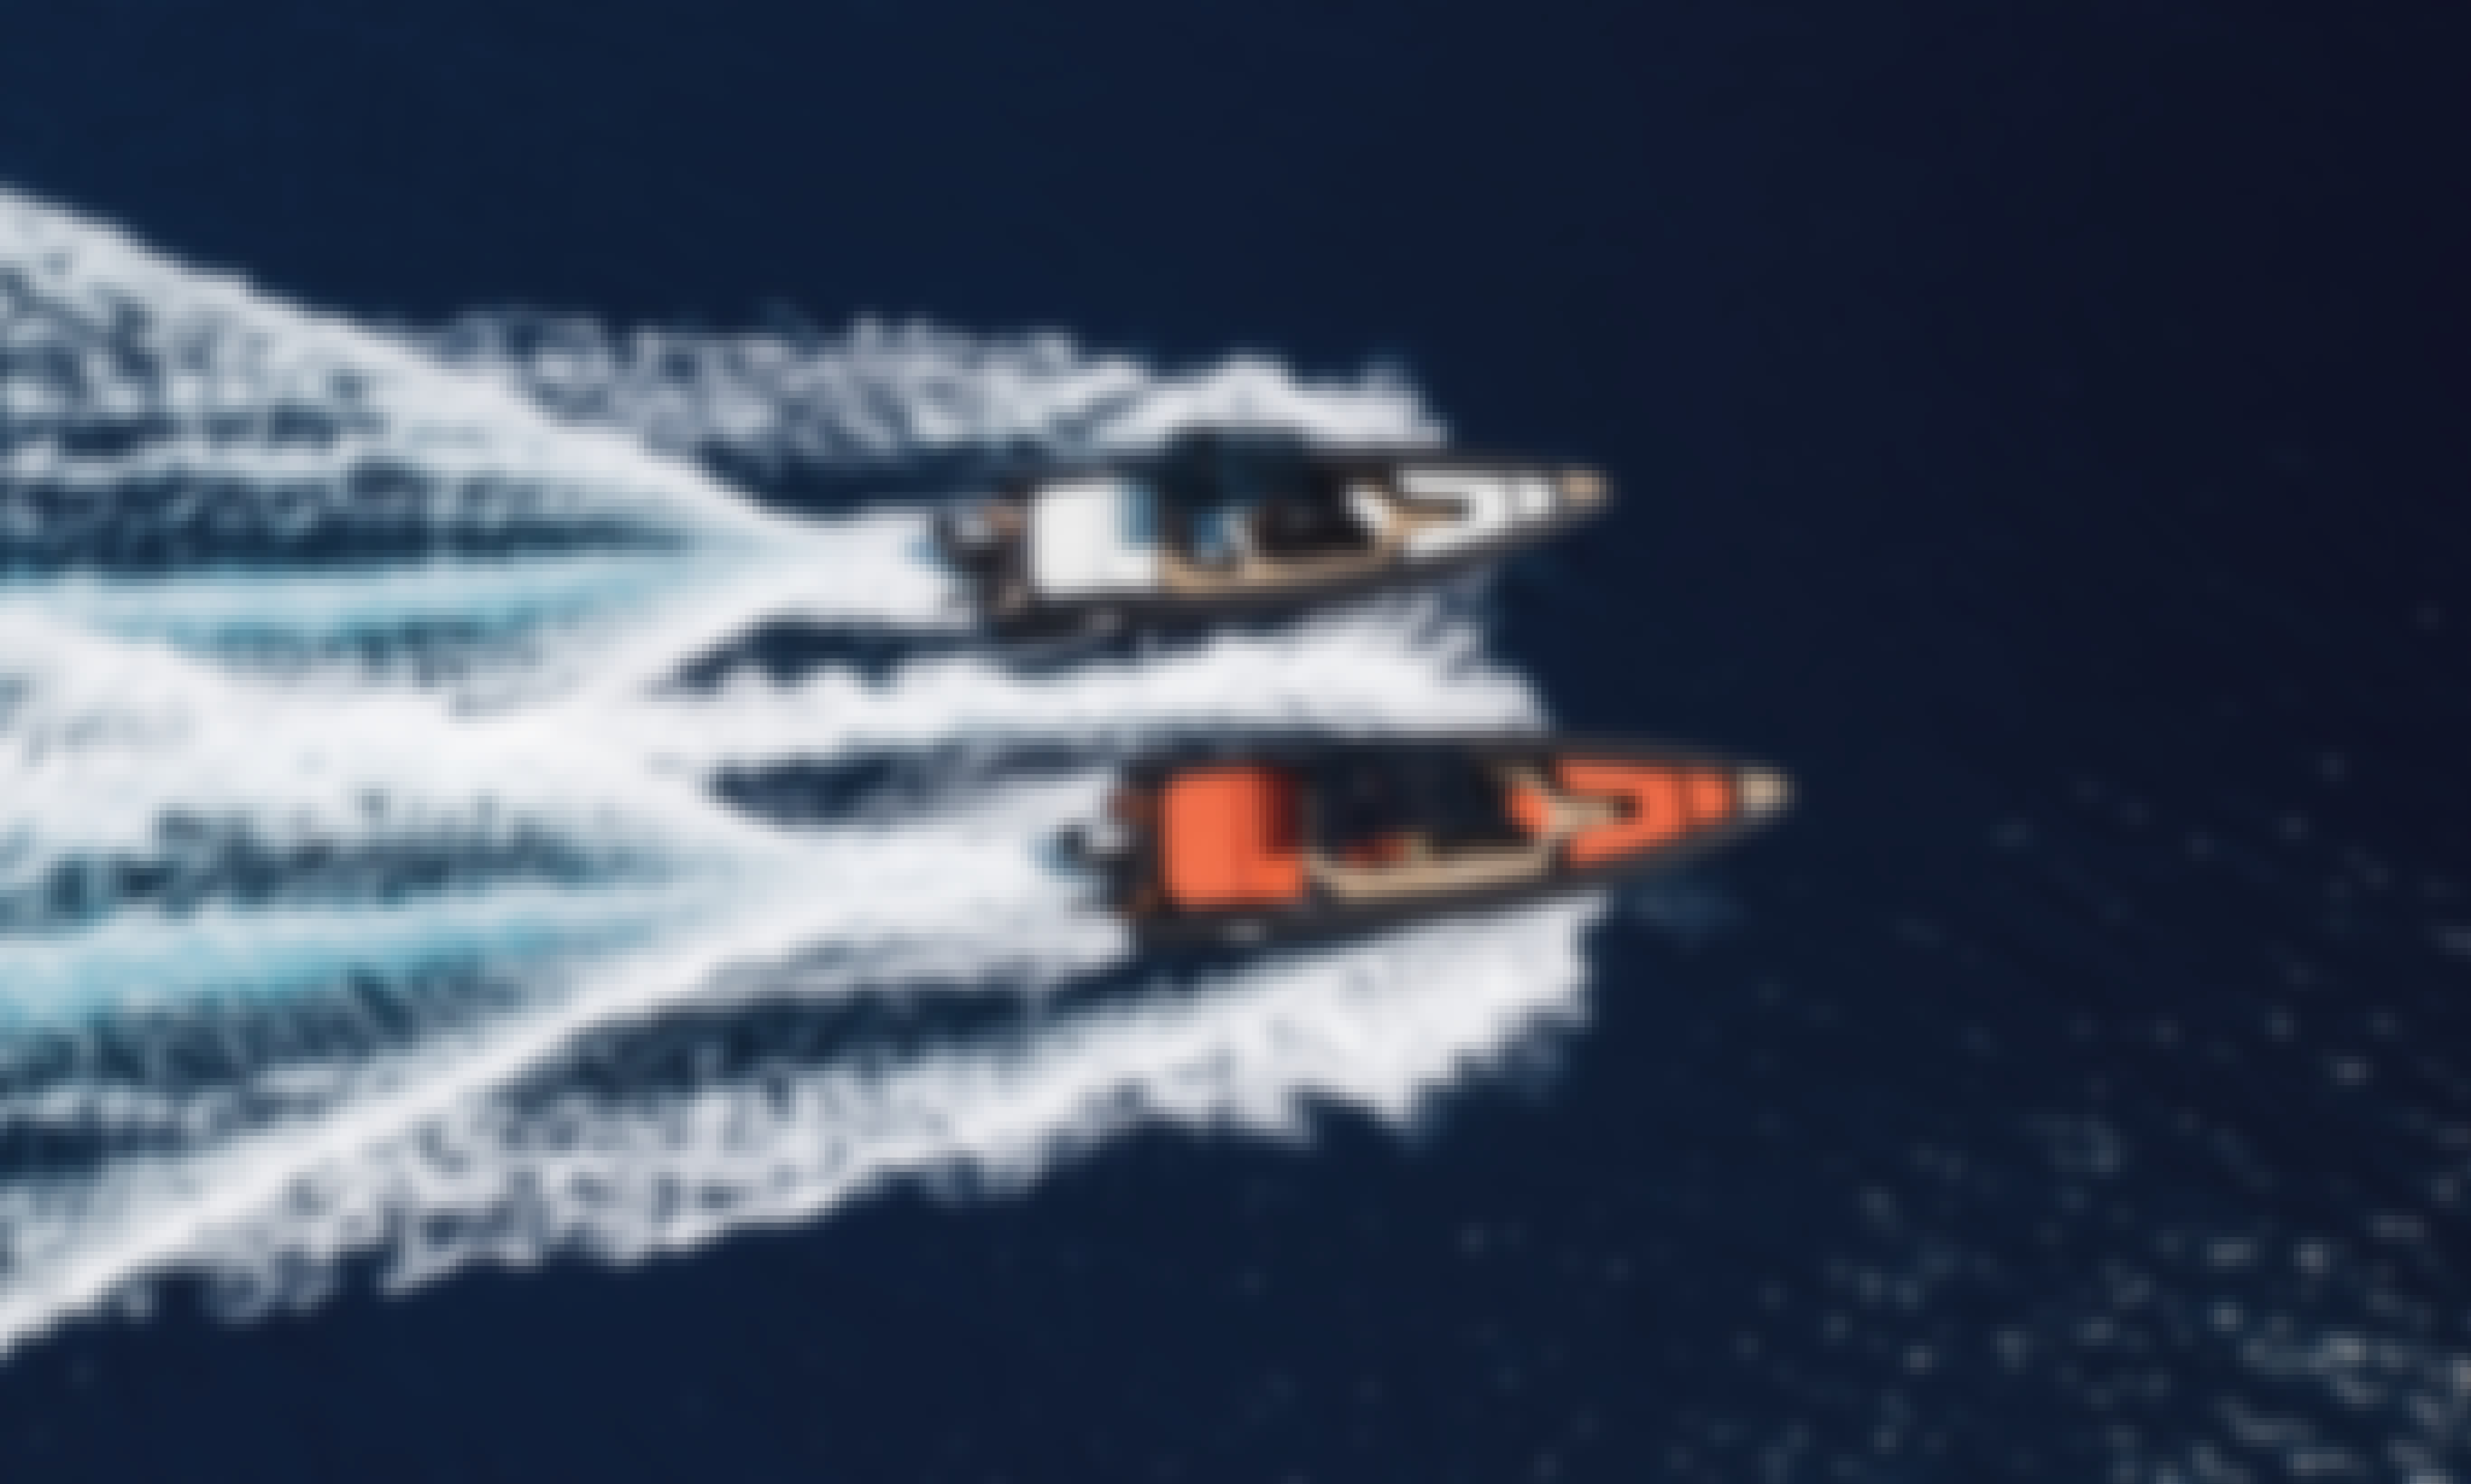 SUMMER SEAFIGHTER 30FT. RIB BOAT | PRIVATE DAILY CRUISES - ISLAND HOPING - SEA TRANSFERS